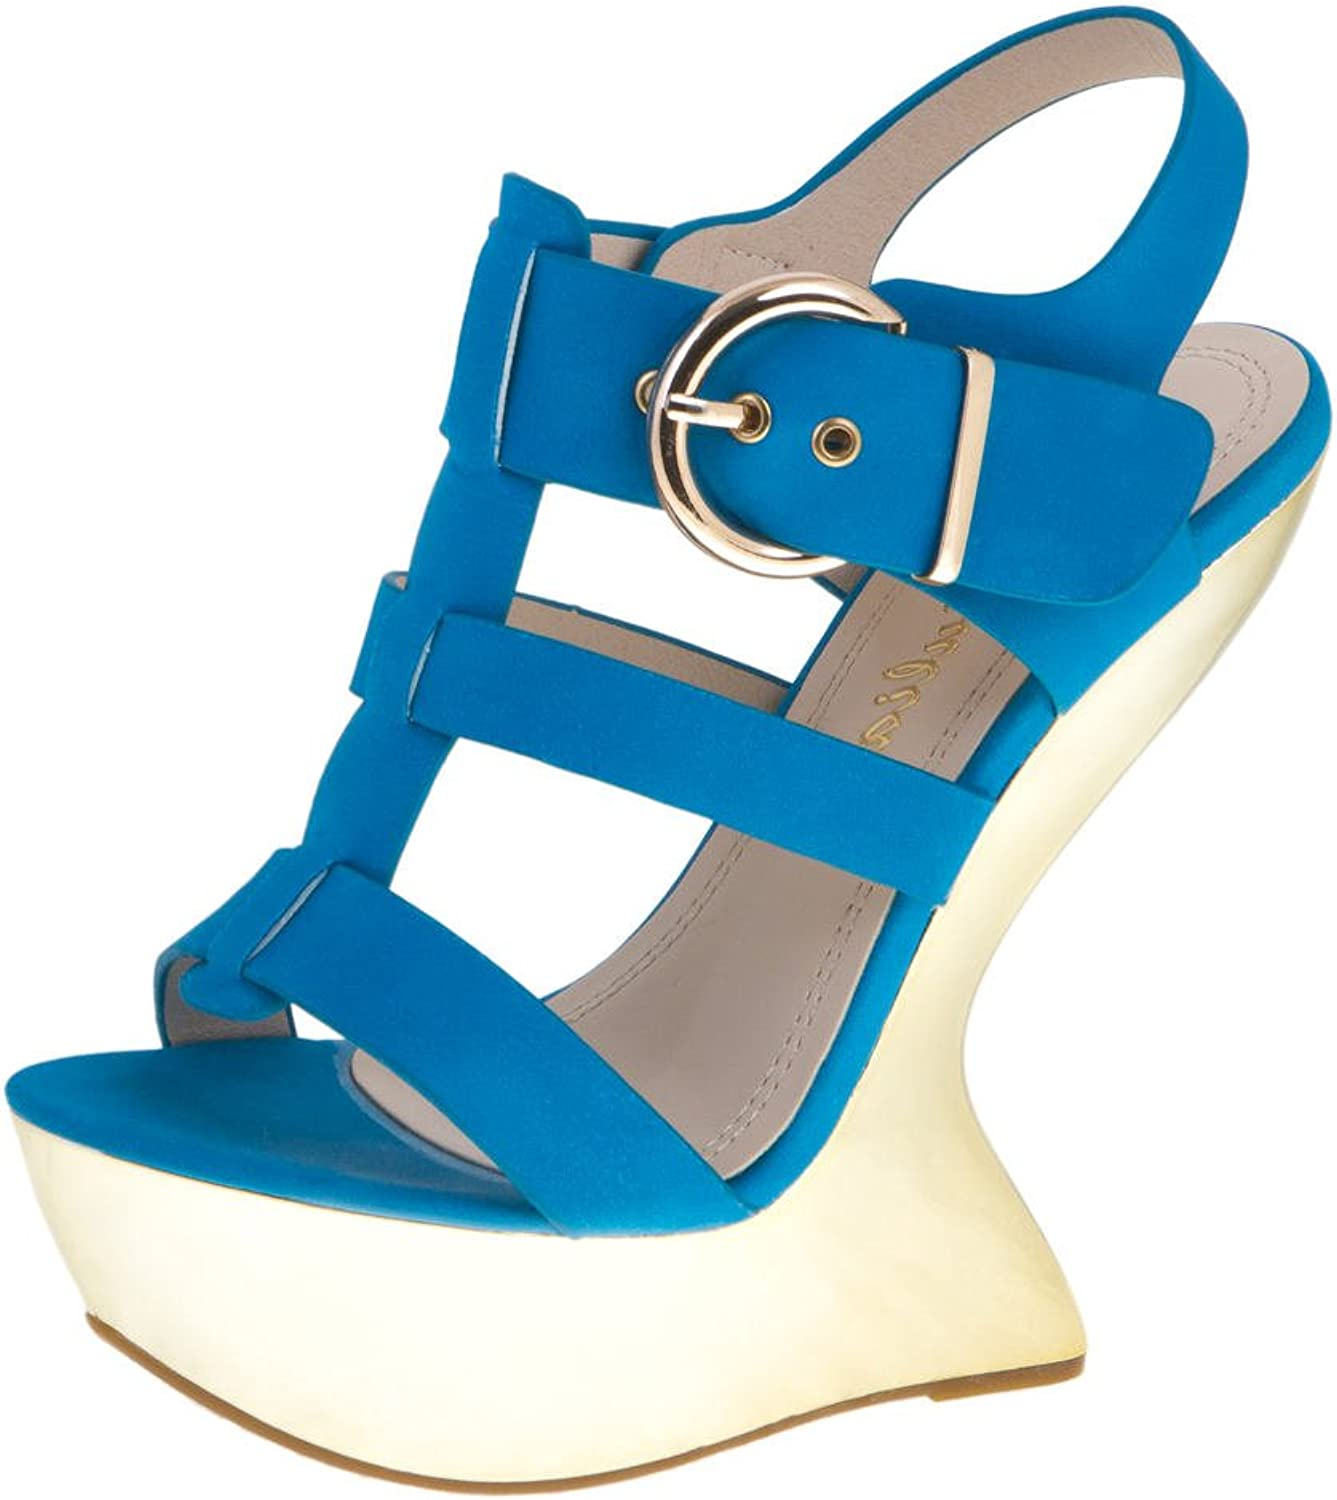 Via Giulia Women's Platform shoes Sexy Ladies Casual Summer Sandals Size 6, 7, 8, 9 US